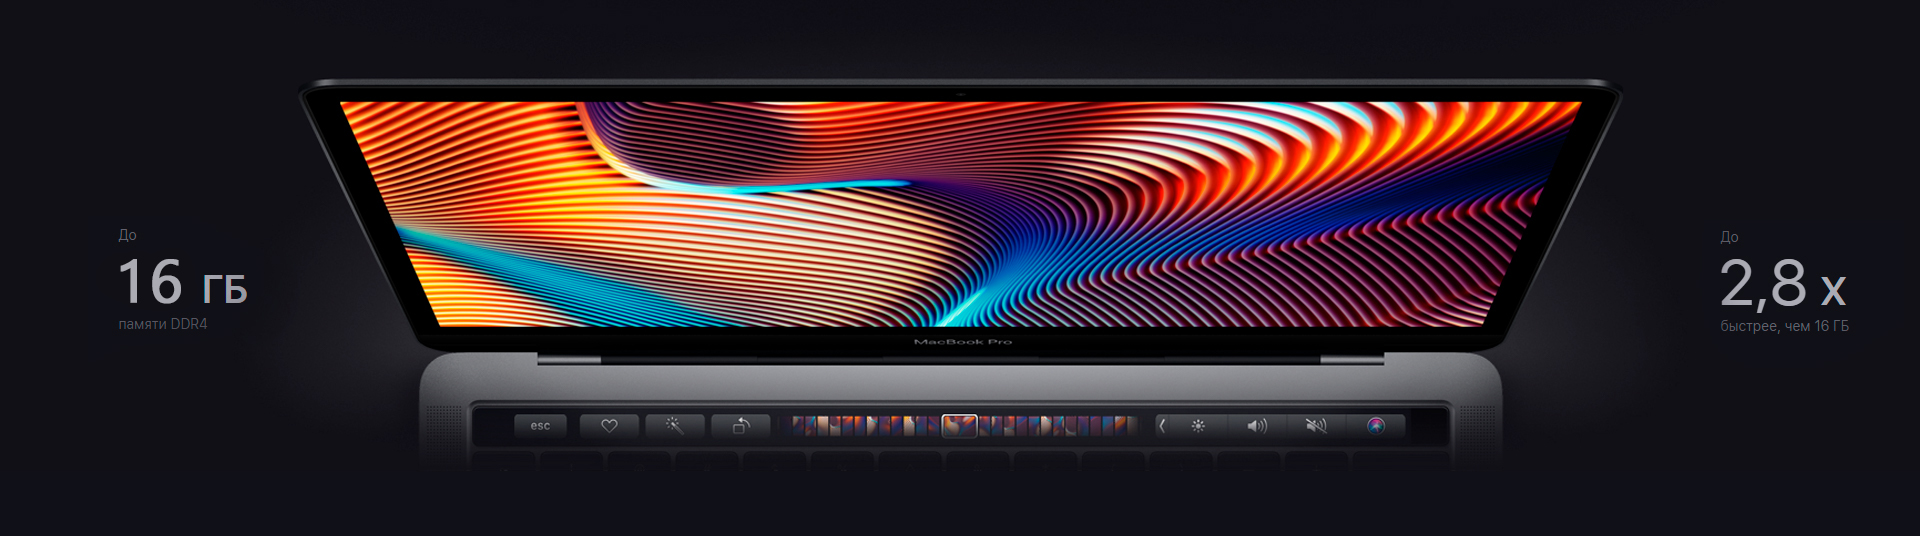 MBP2018-s-view6